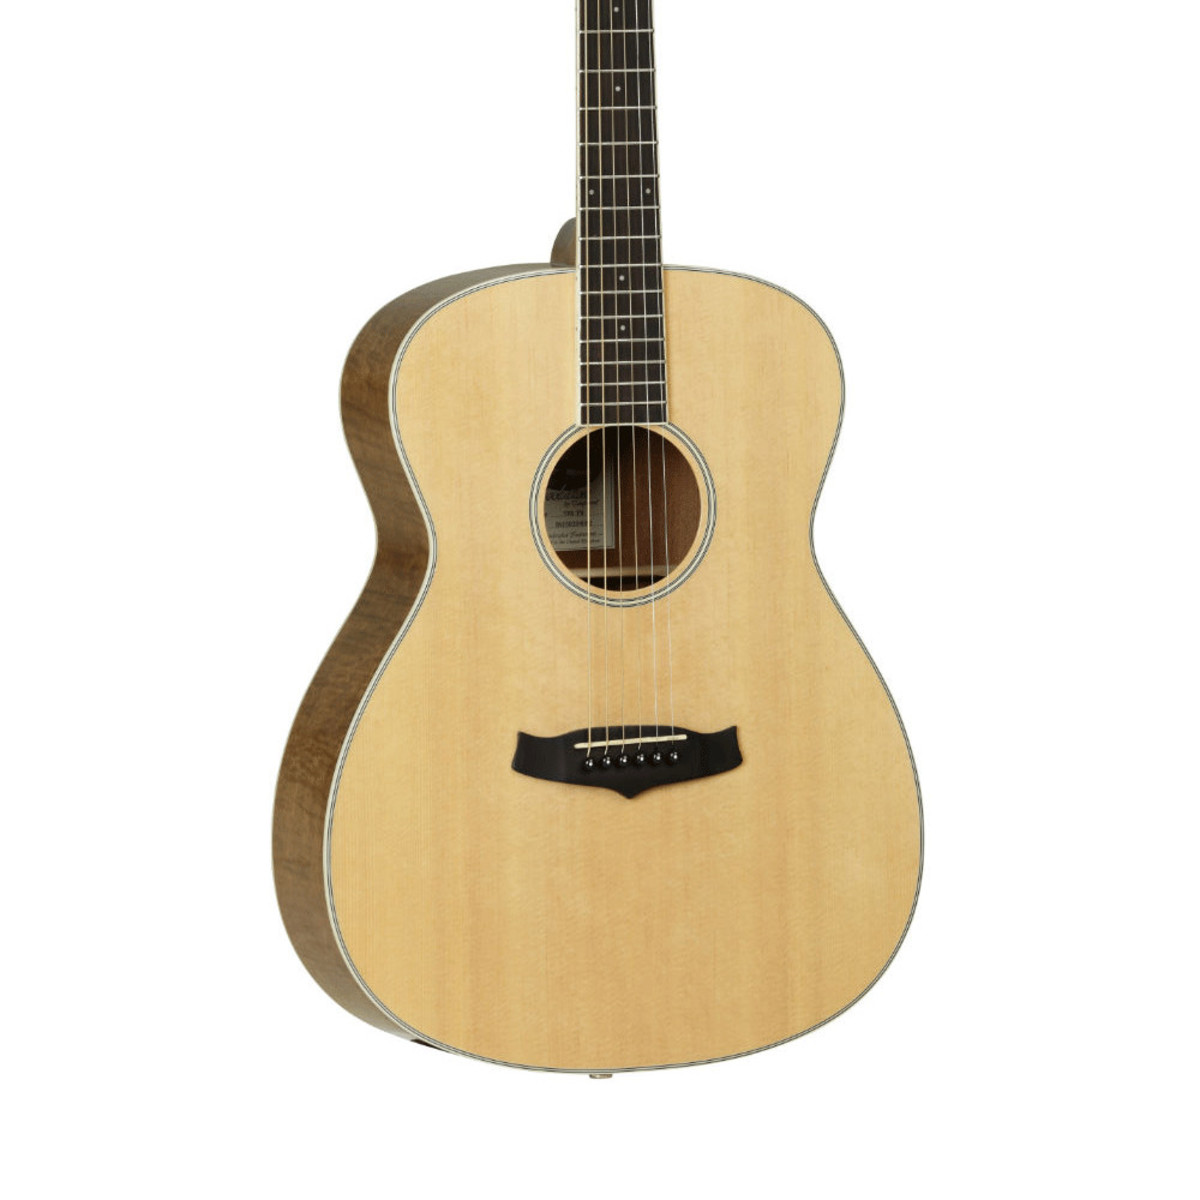 Tanglewood tfa fm evolution deluxe acoustic guitar box for The tanglewood